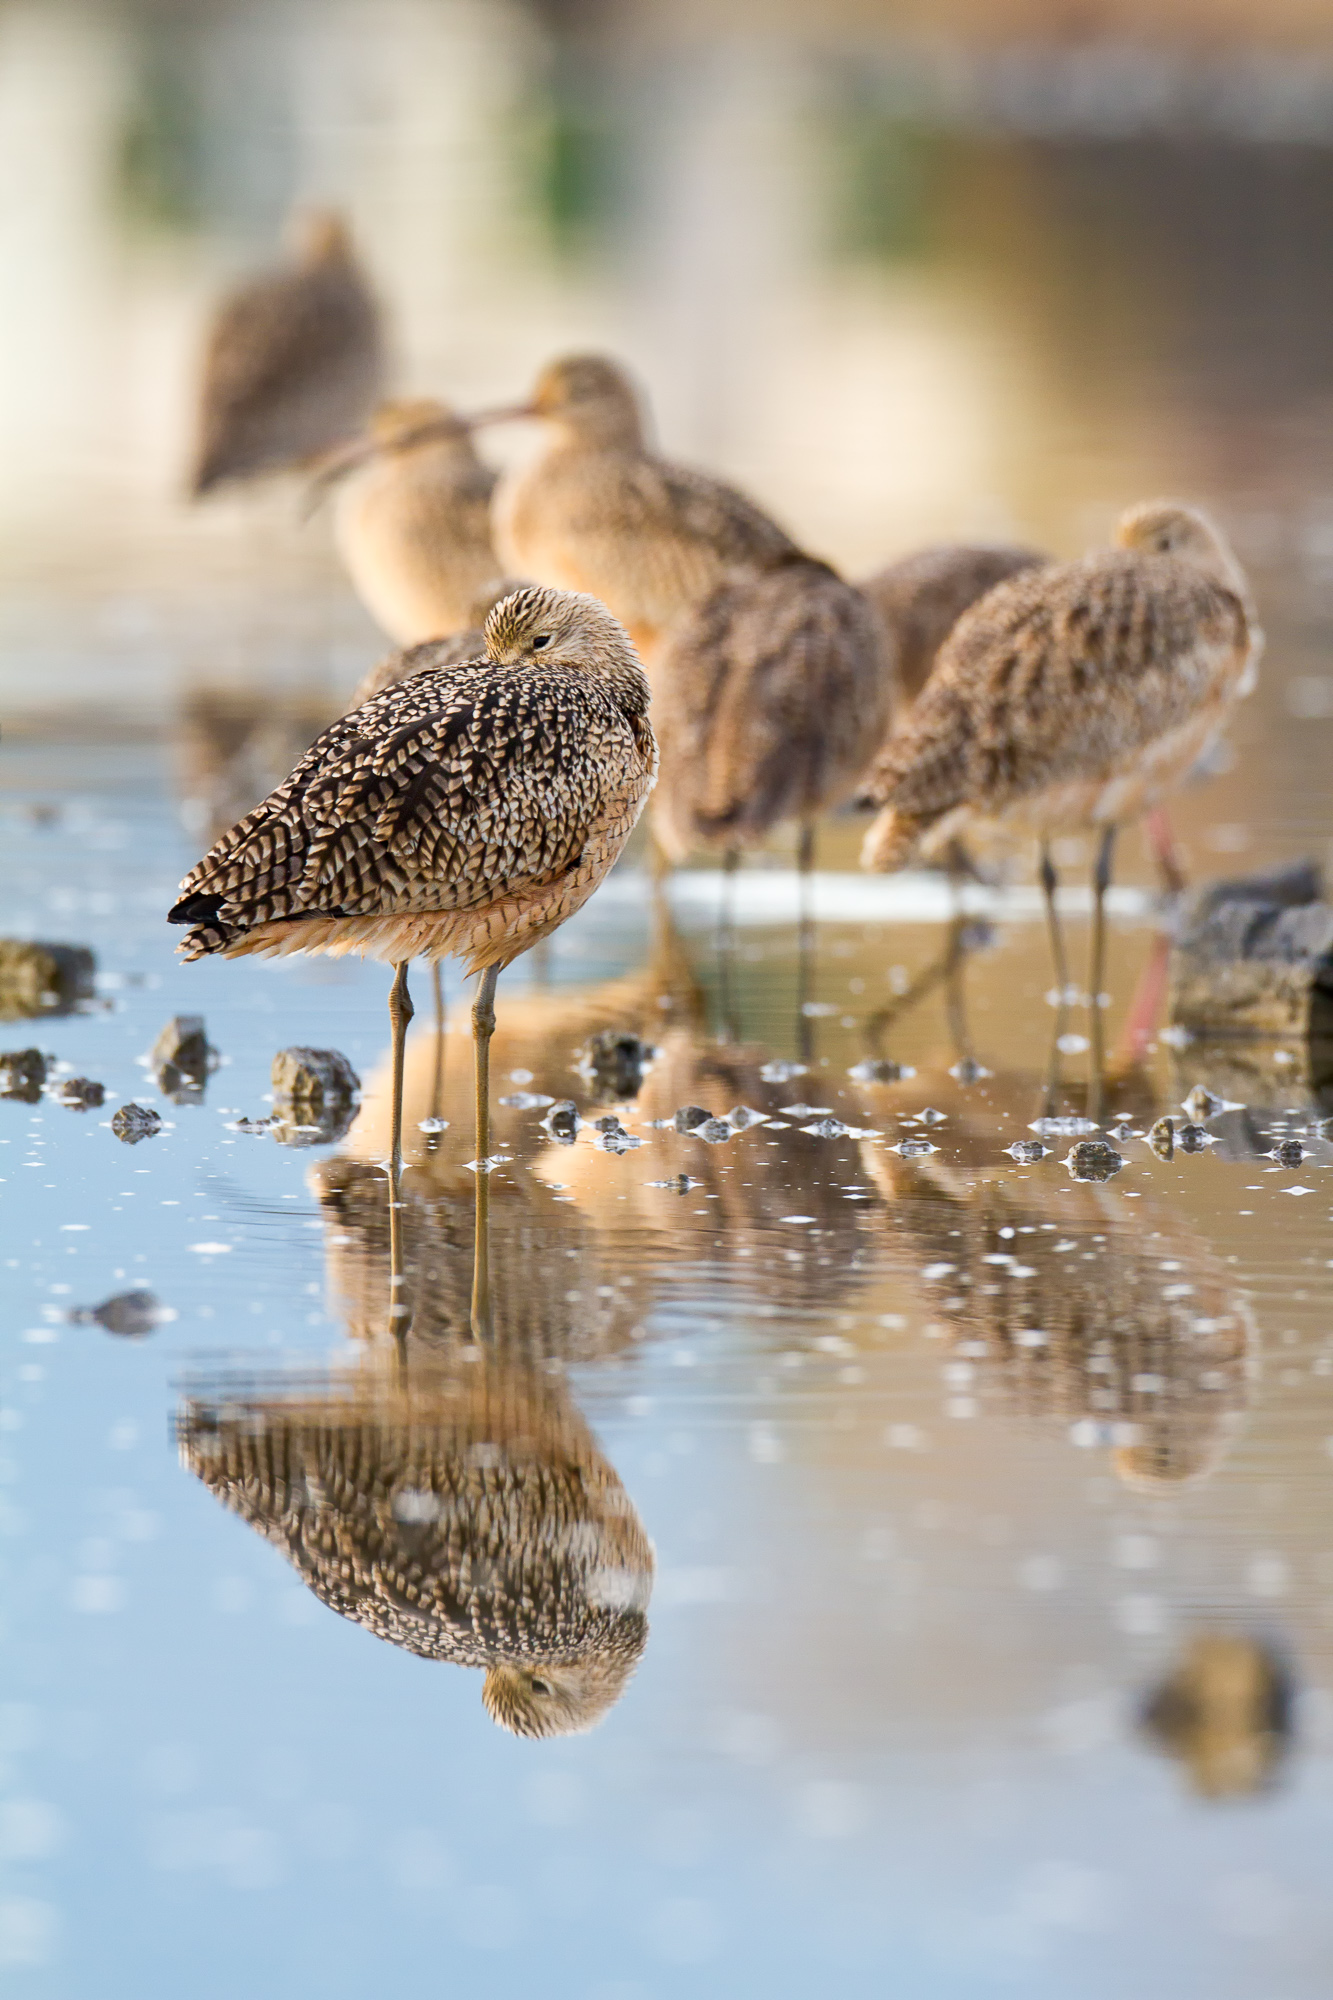 Several long-billed curlews stand together in a shallow wetland pool